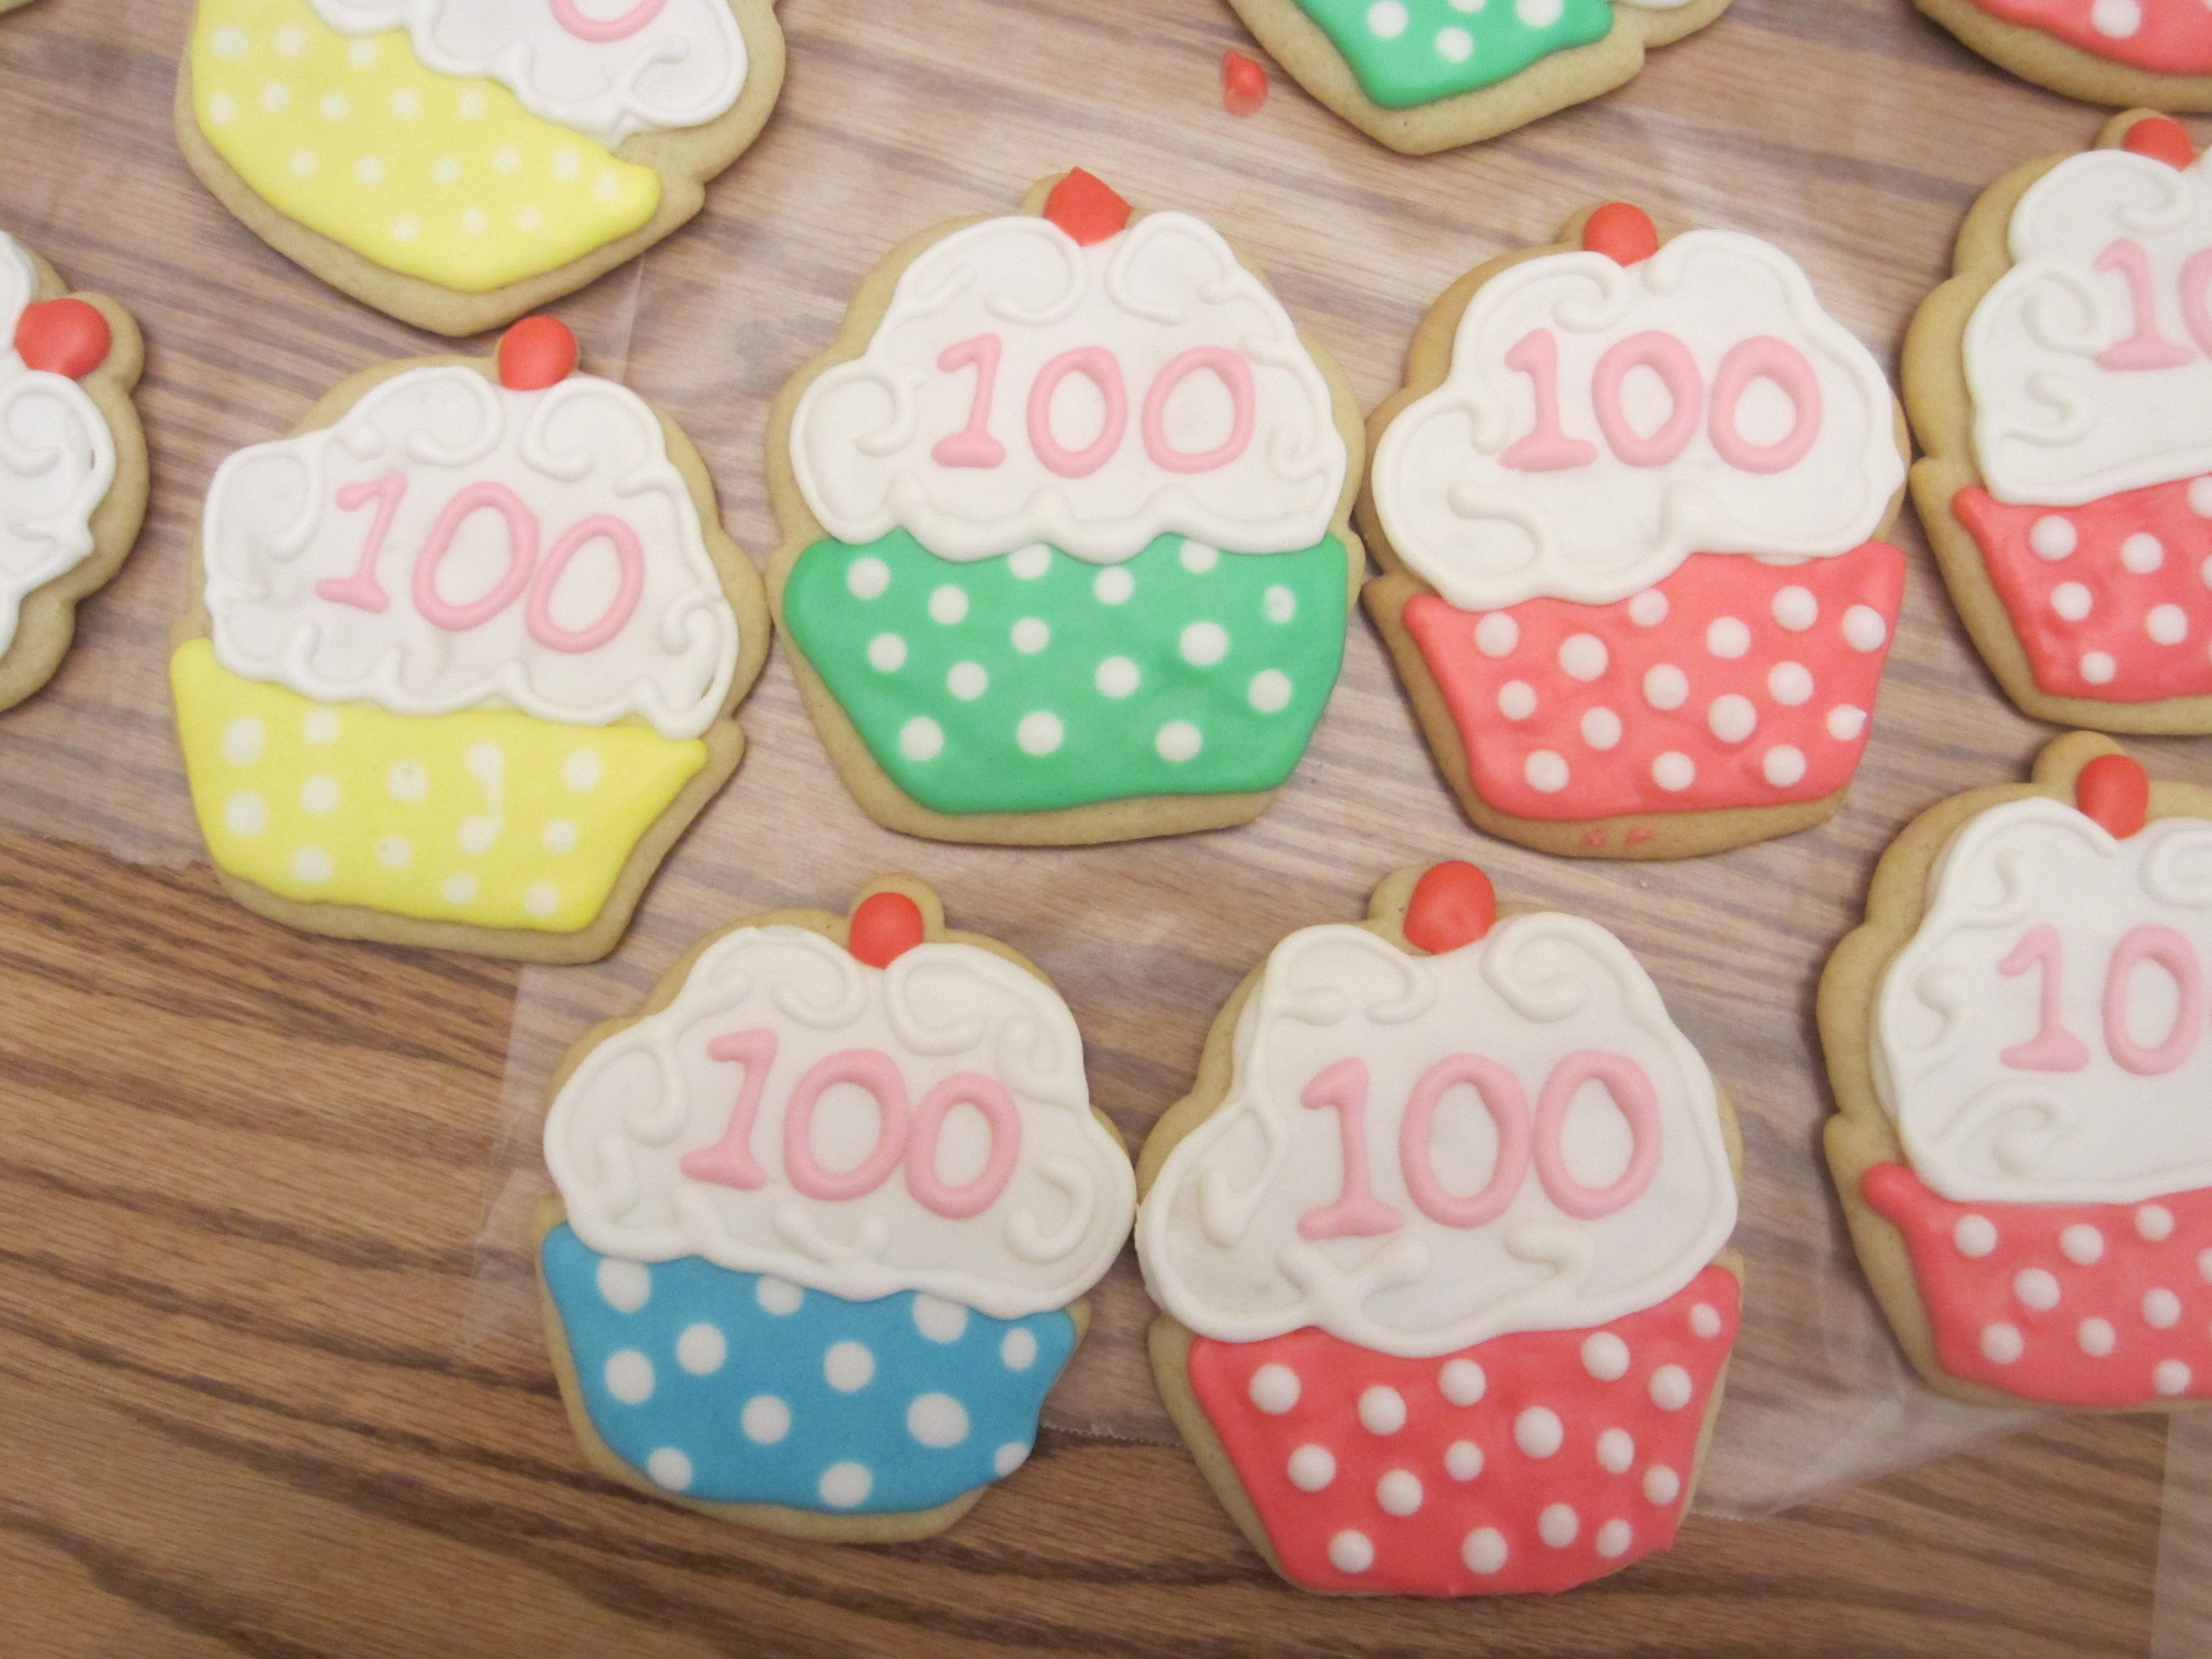 100th birthday party cookies decorated sugar cookies in 2019 rh pinterest com